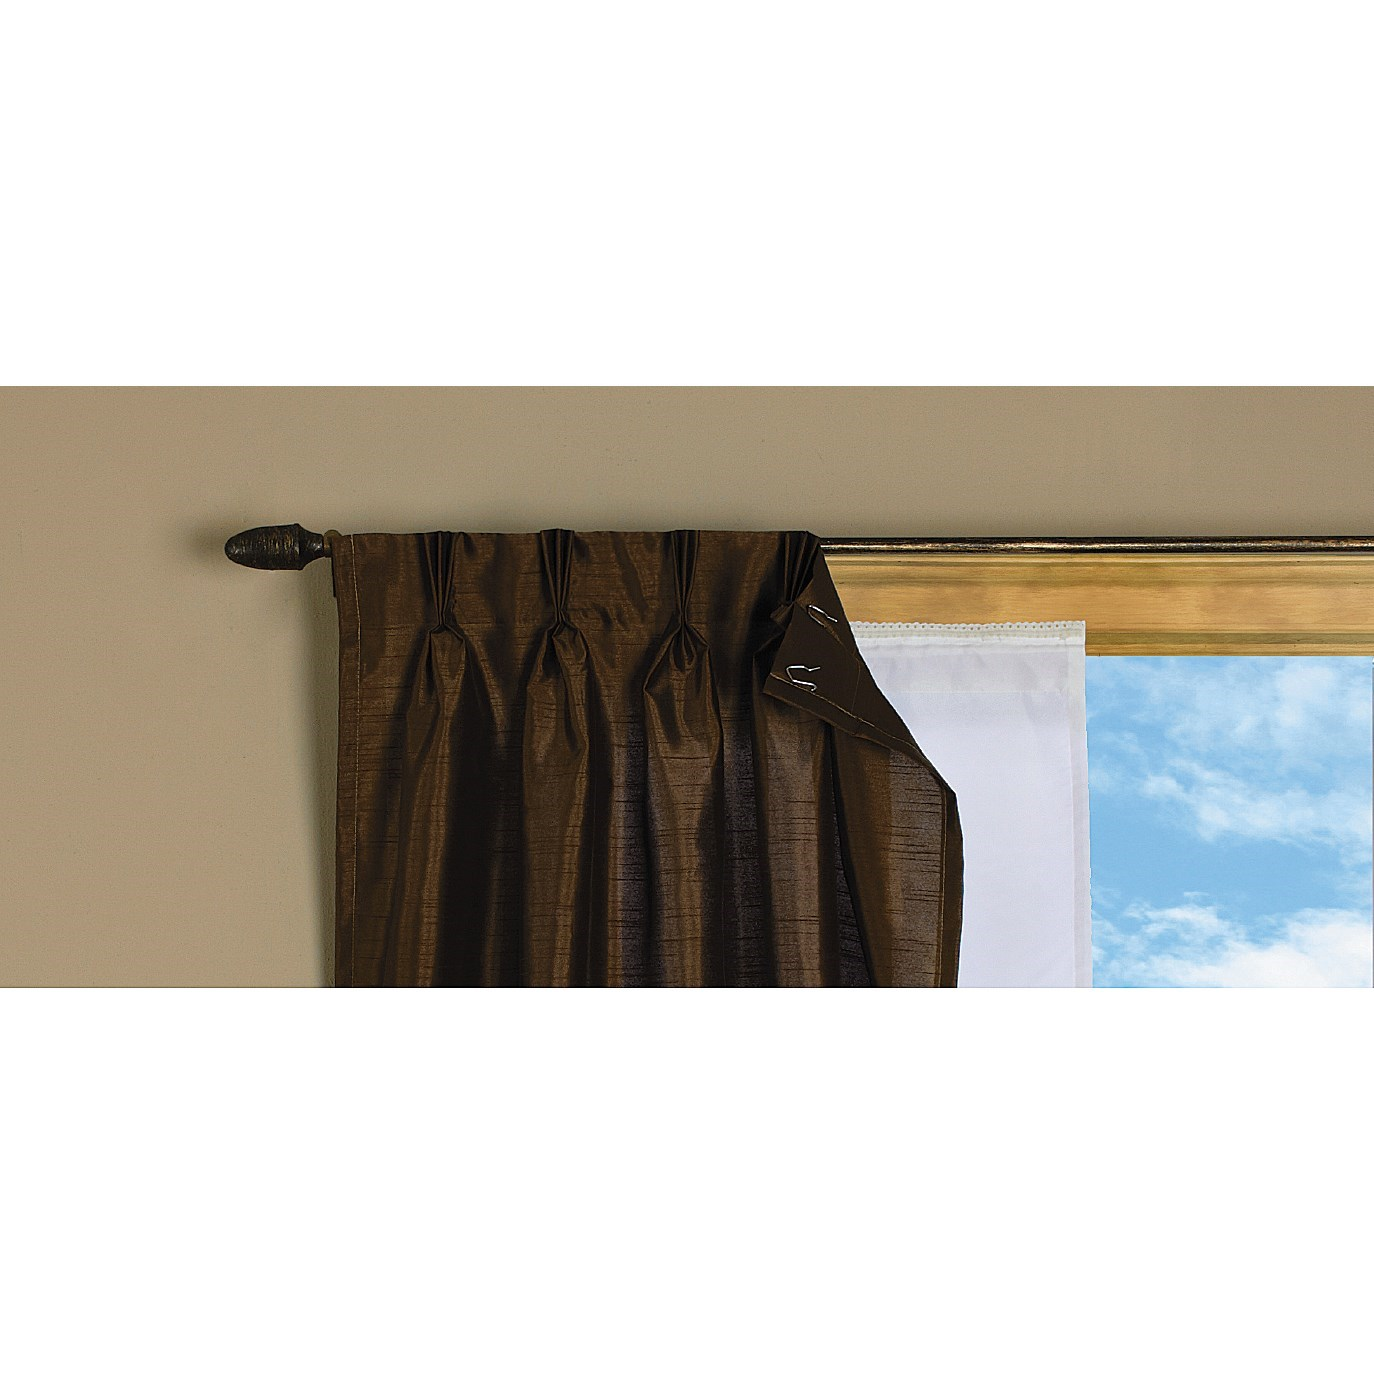 Thermalogic Ideal Liner Curtain Panel 50x77 9705n